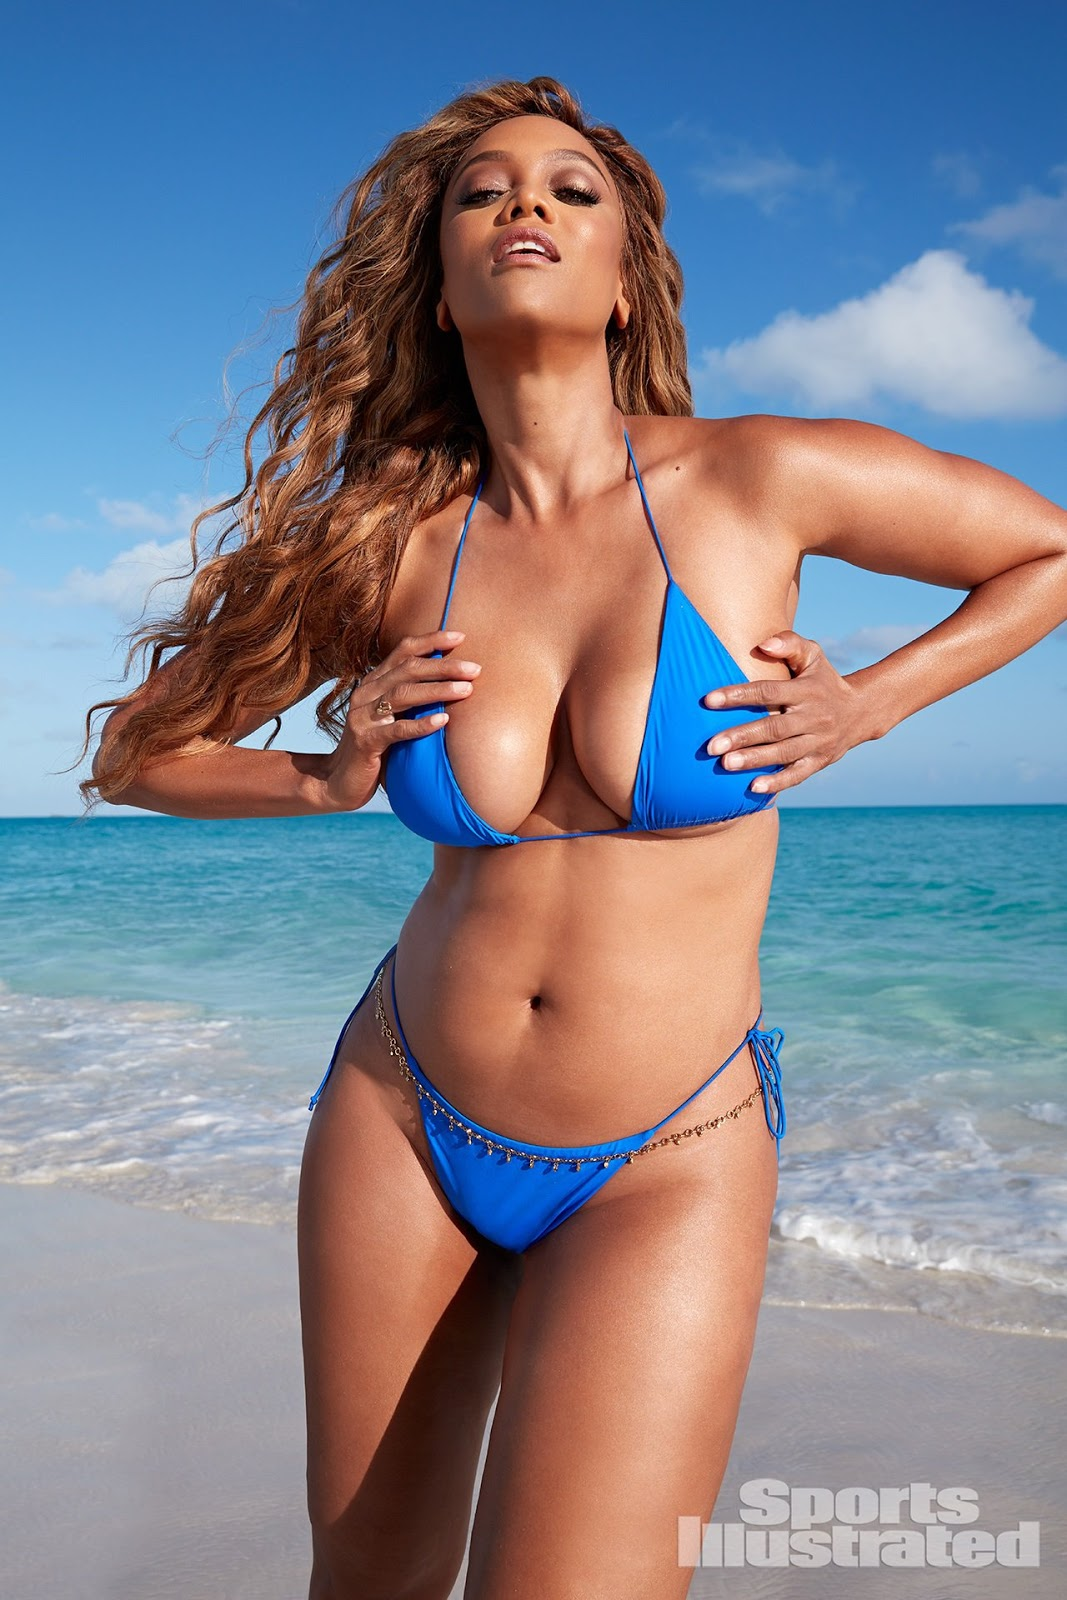 Tyra Banks sizzles in tiny bikini for Sports Illustrated